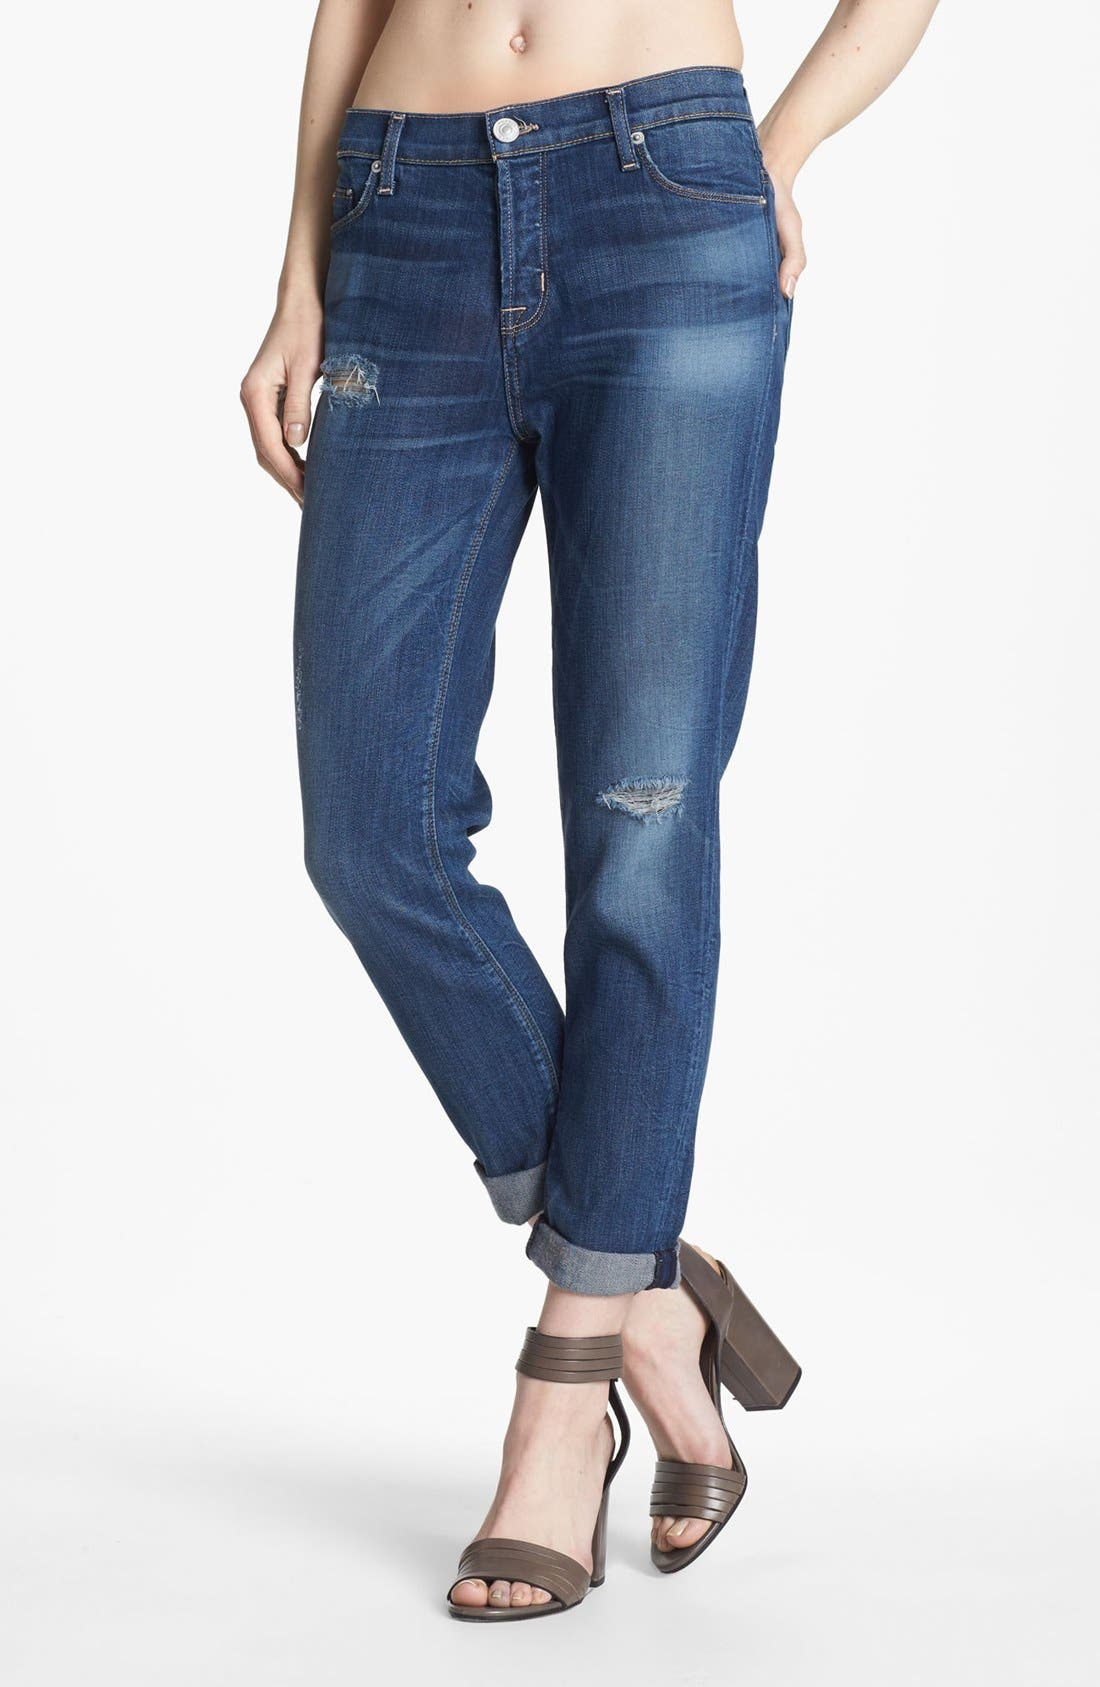 Alternate Image 1 Selected - Hudson Jeans 'Leigh' Boyfriend Jeans (Youth Vintage)